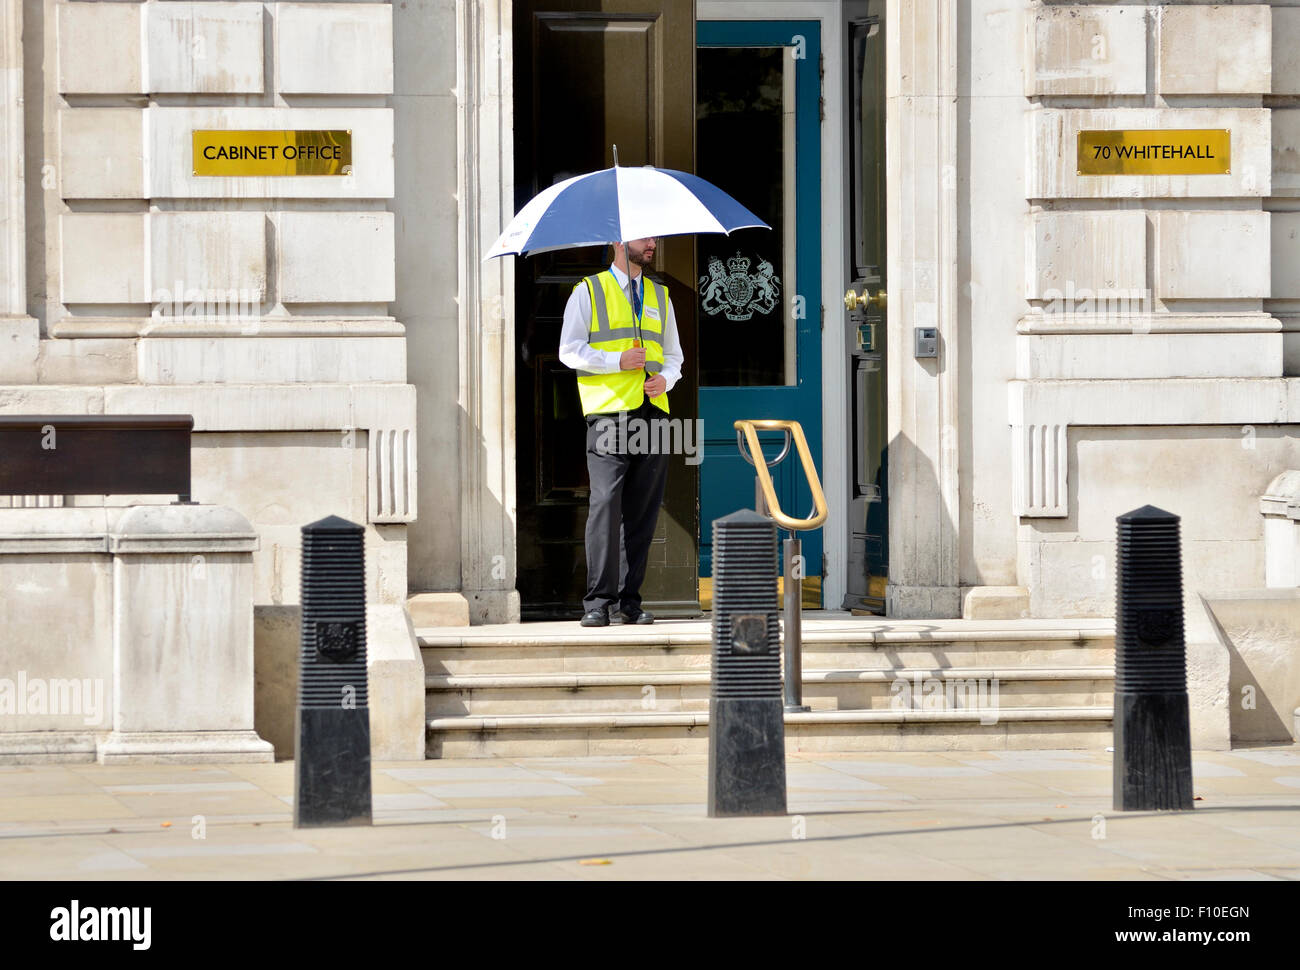 London, England, UK. Security guard outside the Cabinet Office, 70 ...